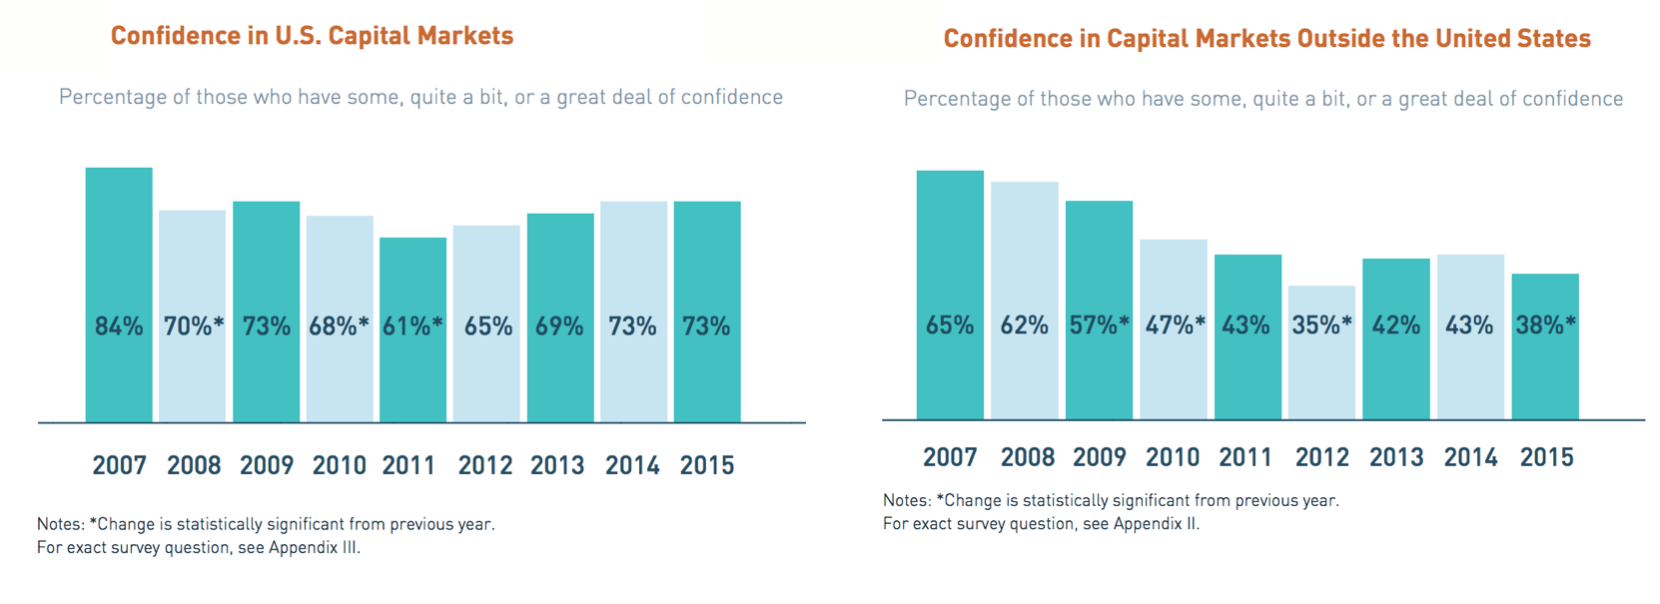 Confidence in capital markets